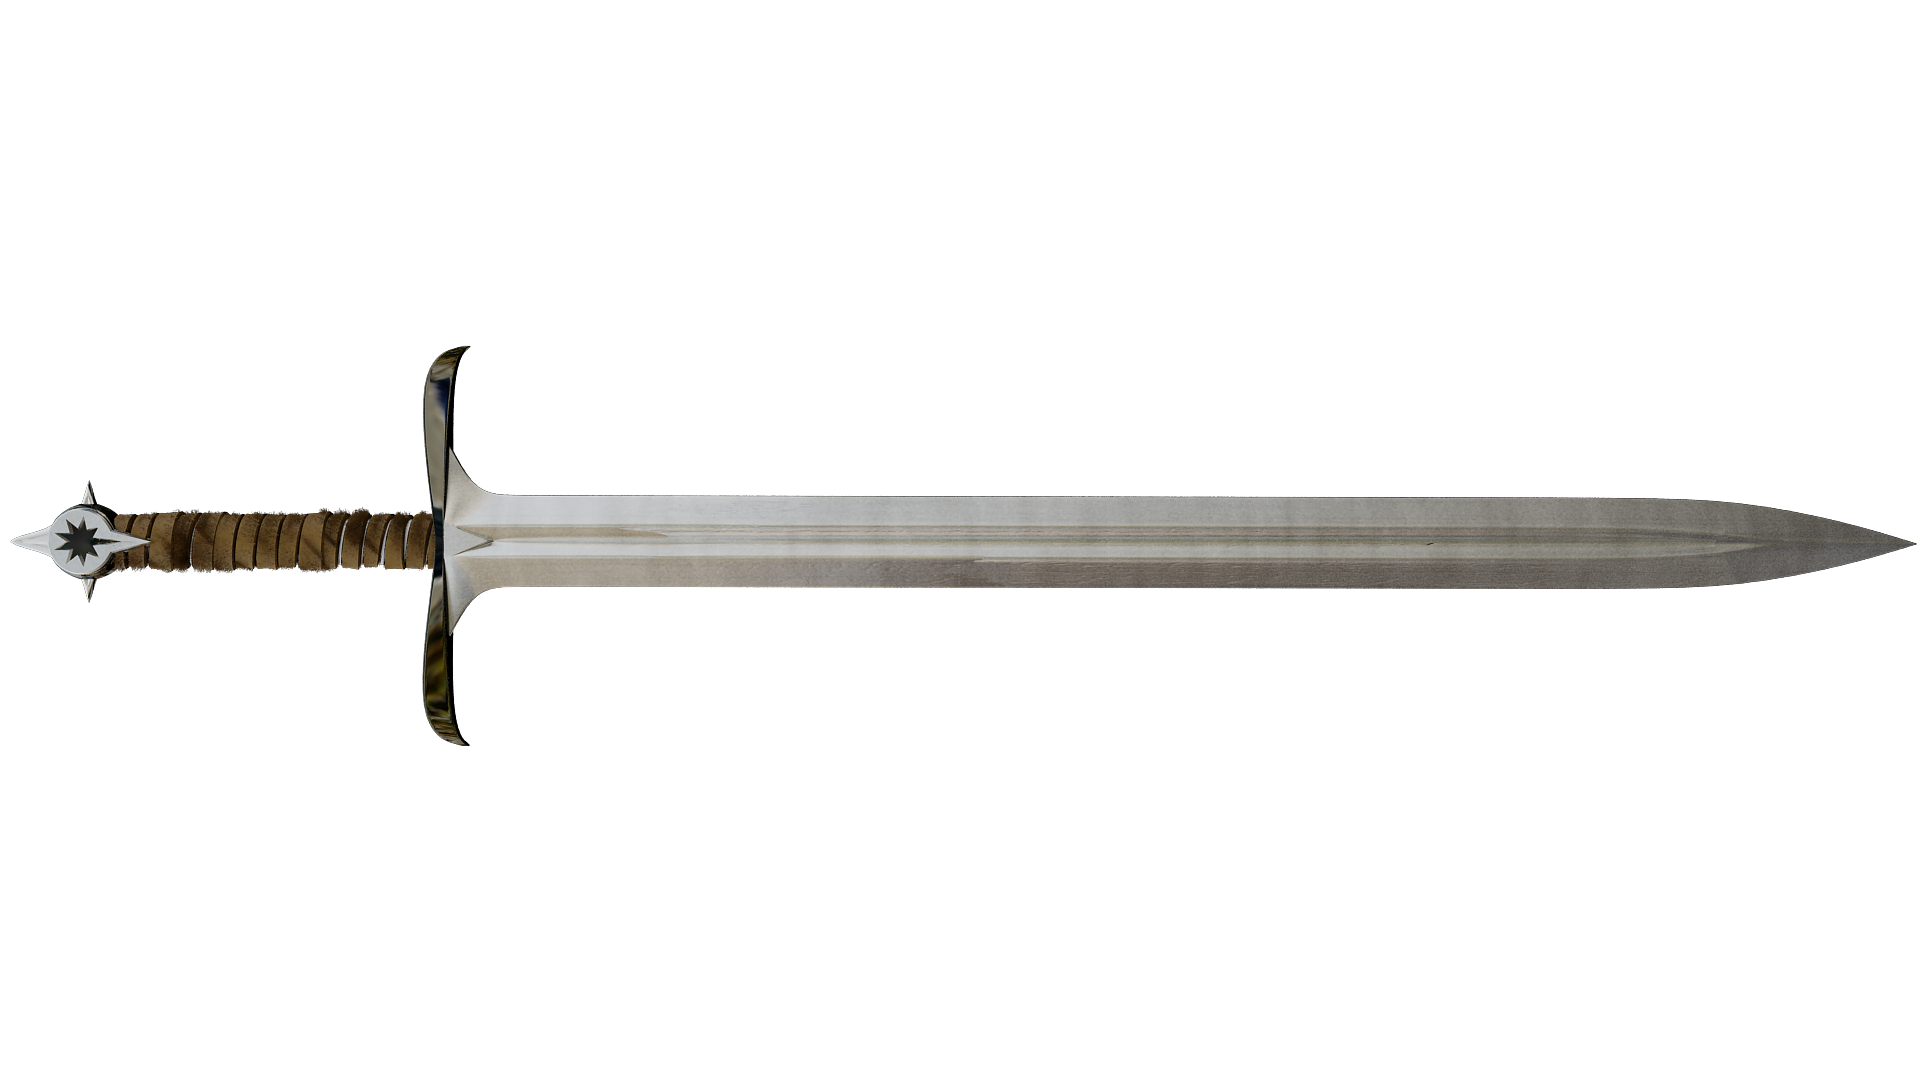 Réclamation des modifications de stats. - Page 6 Sword-hd-png-sword-png-image-1920